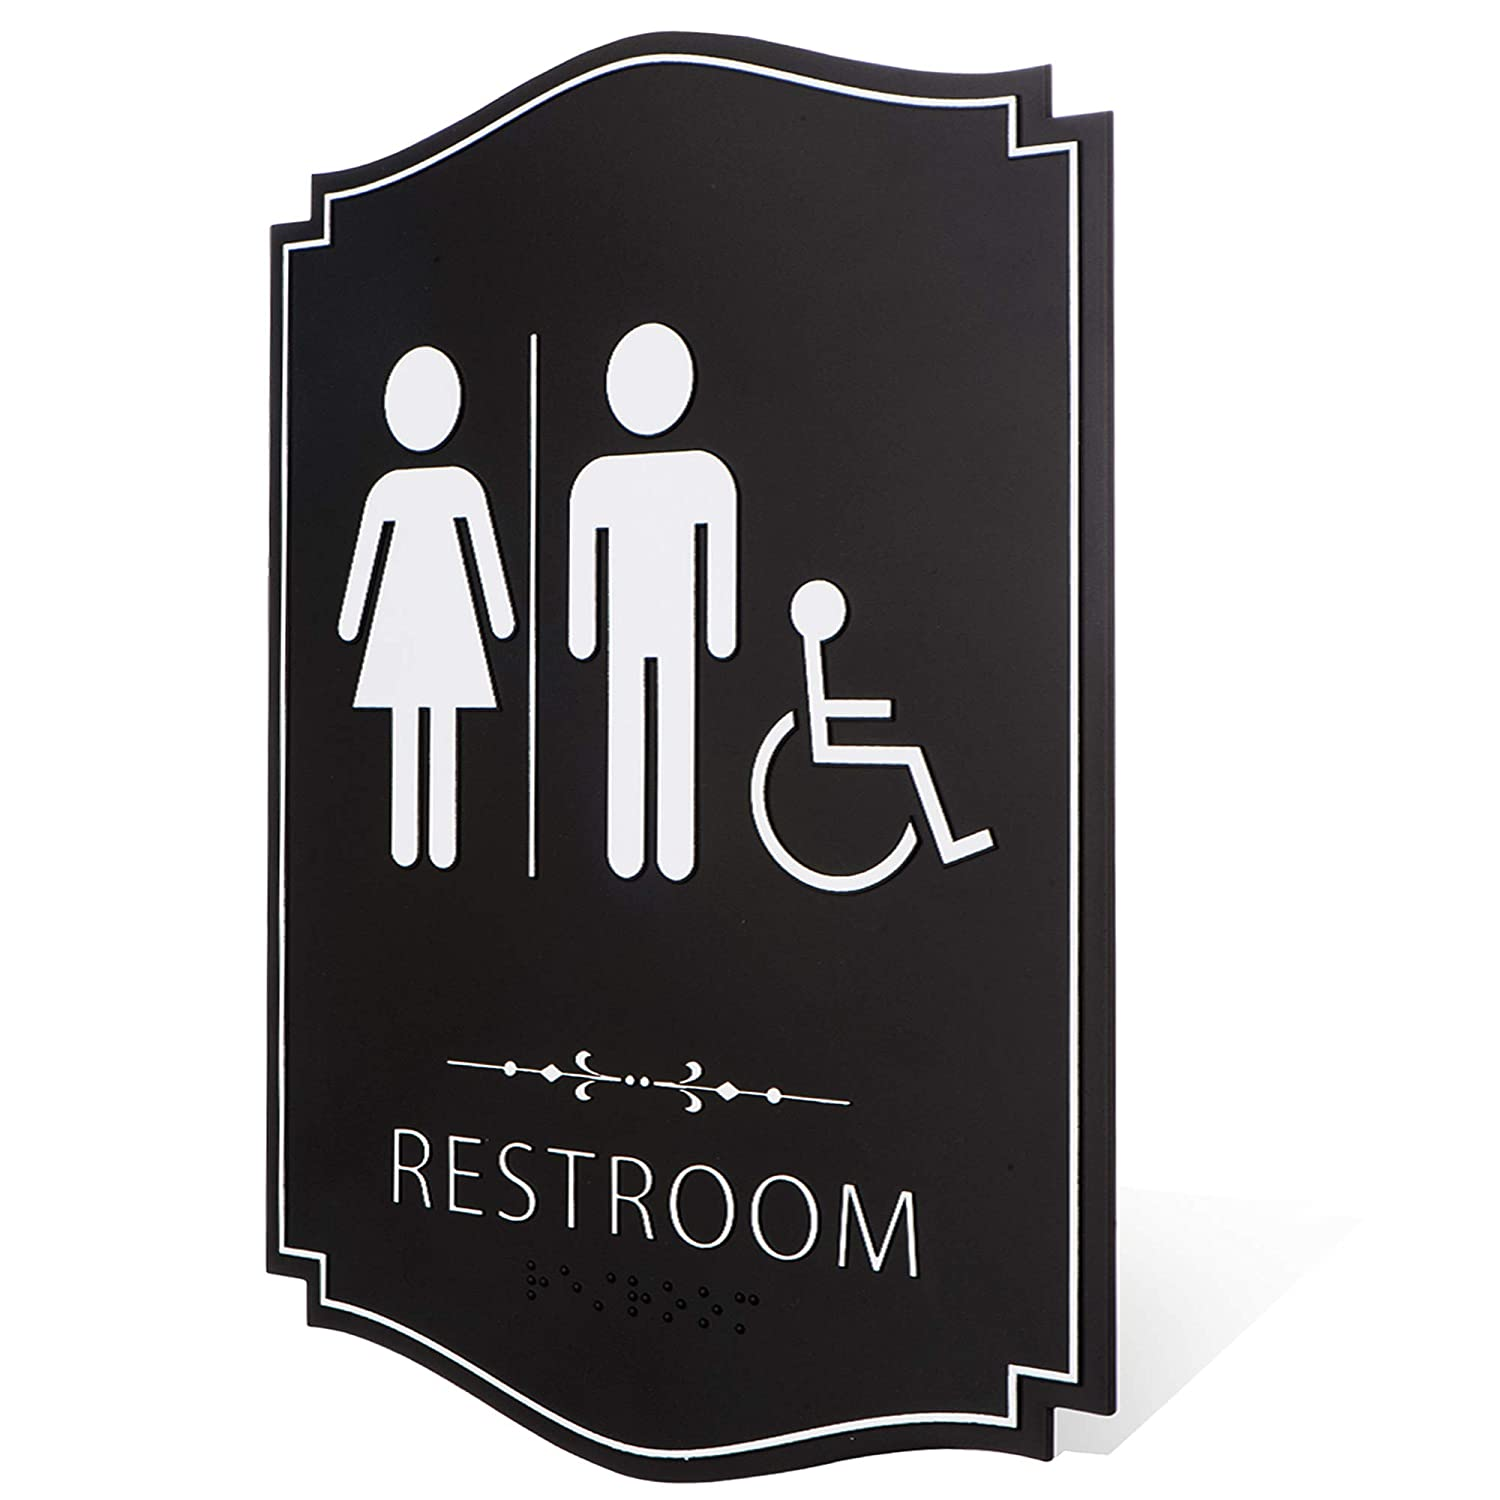 "Gender Neutral Unisex/Handicap Men/Women Family Restroom Sign Black/White (9"" x 6"" 1pk) - ADA Compliant Braille Family Bathroom Sign with Double Sided 3M Tape for Offices, Businesses, and Restaurants"